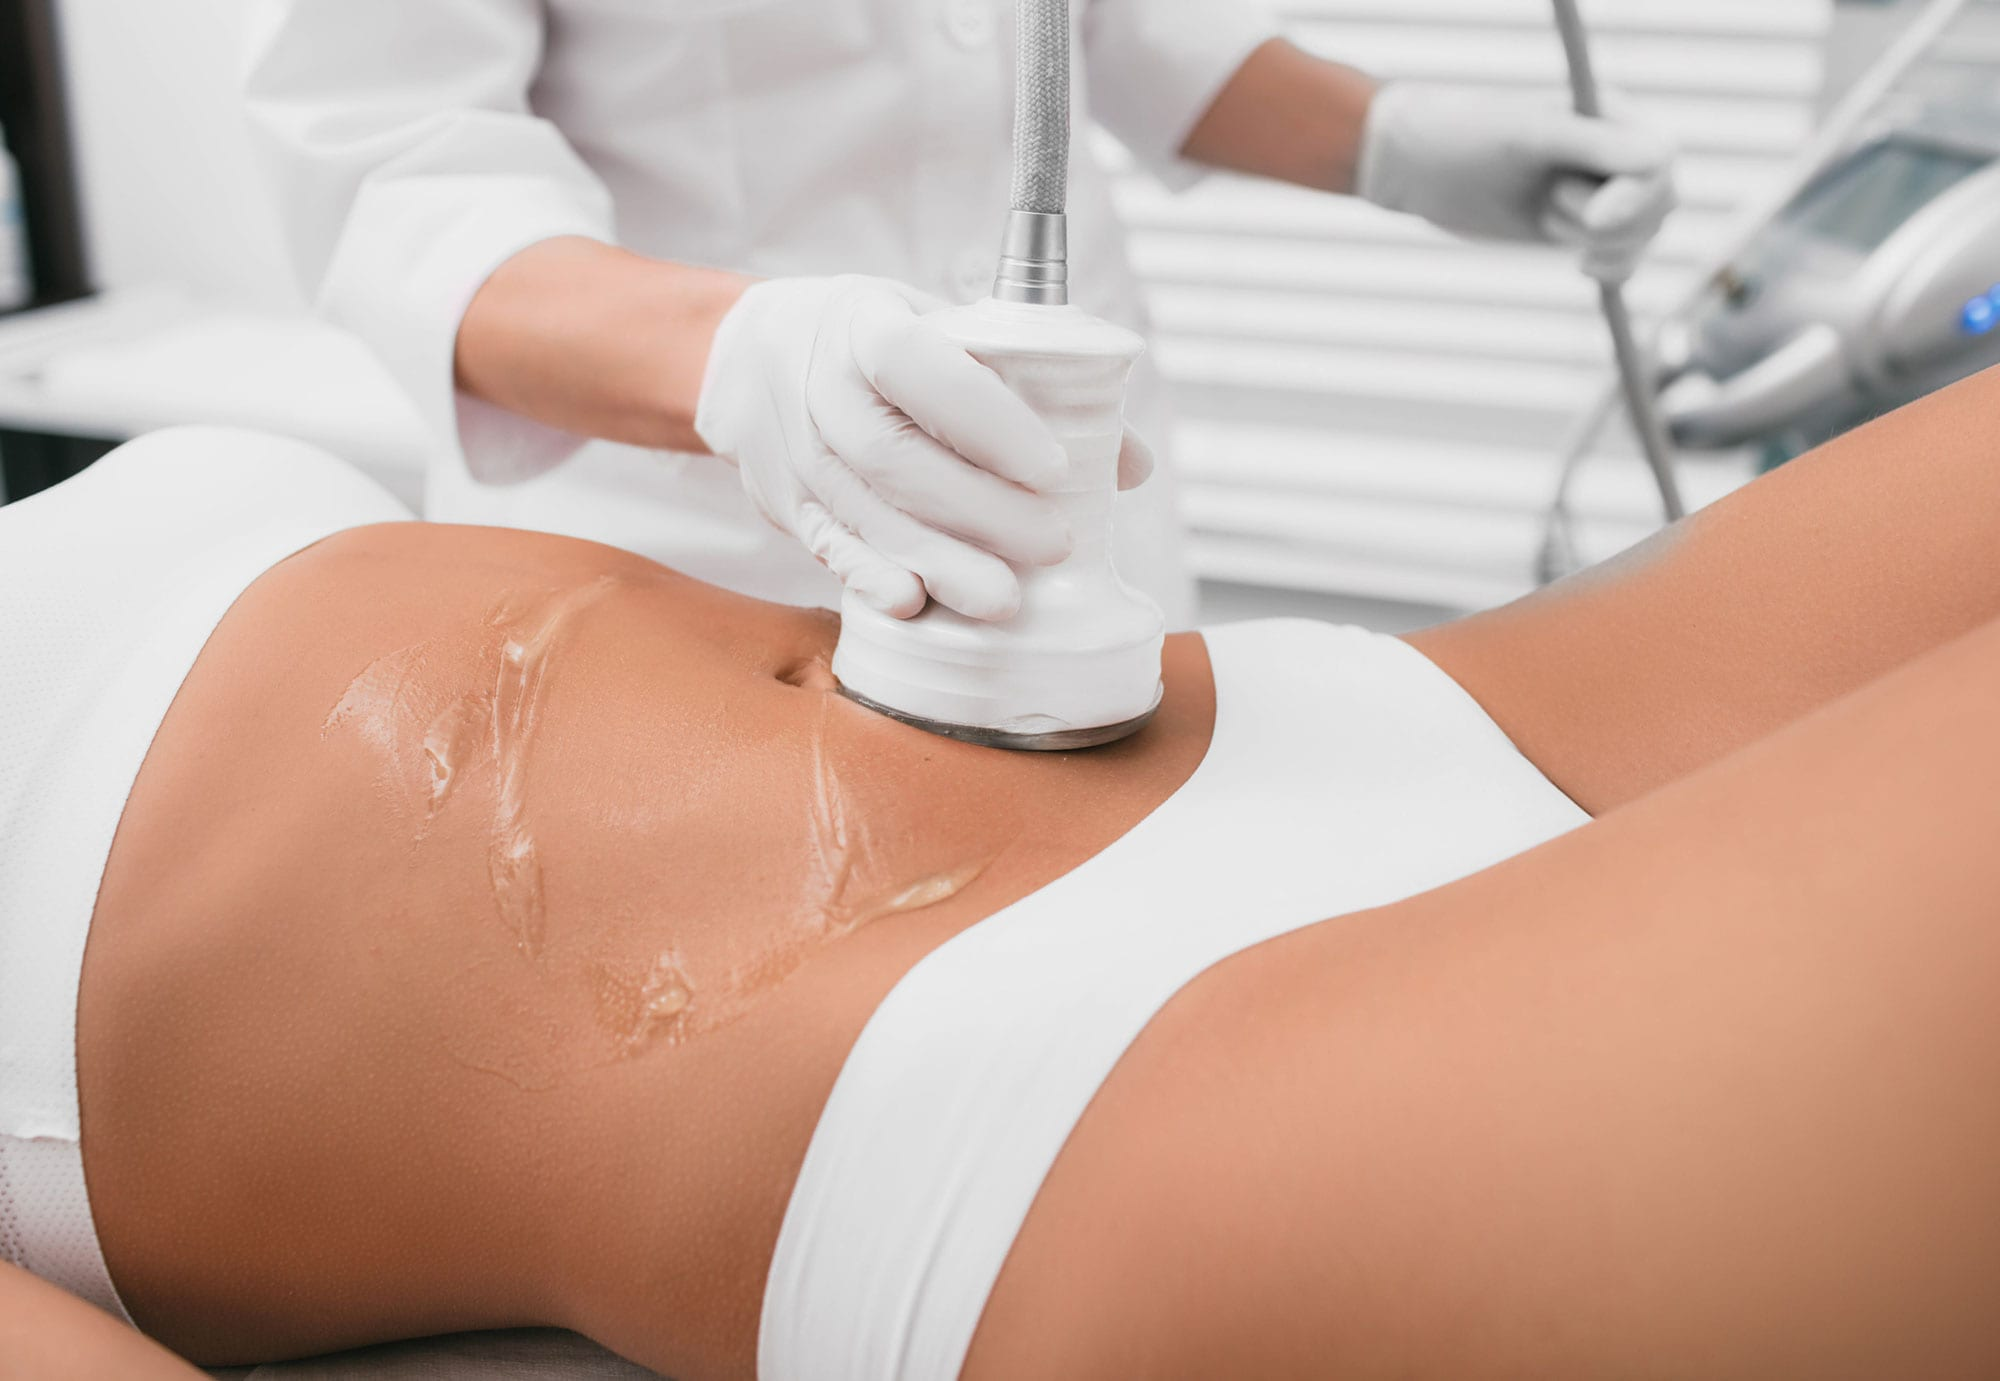 CAVITATION + RF (BODY SCULPTING)